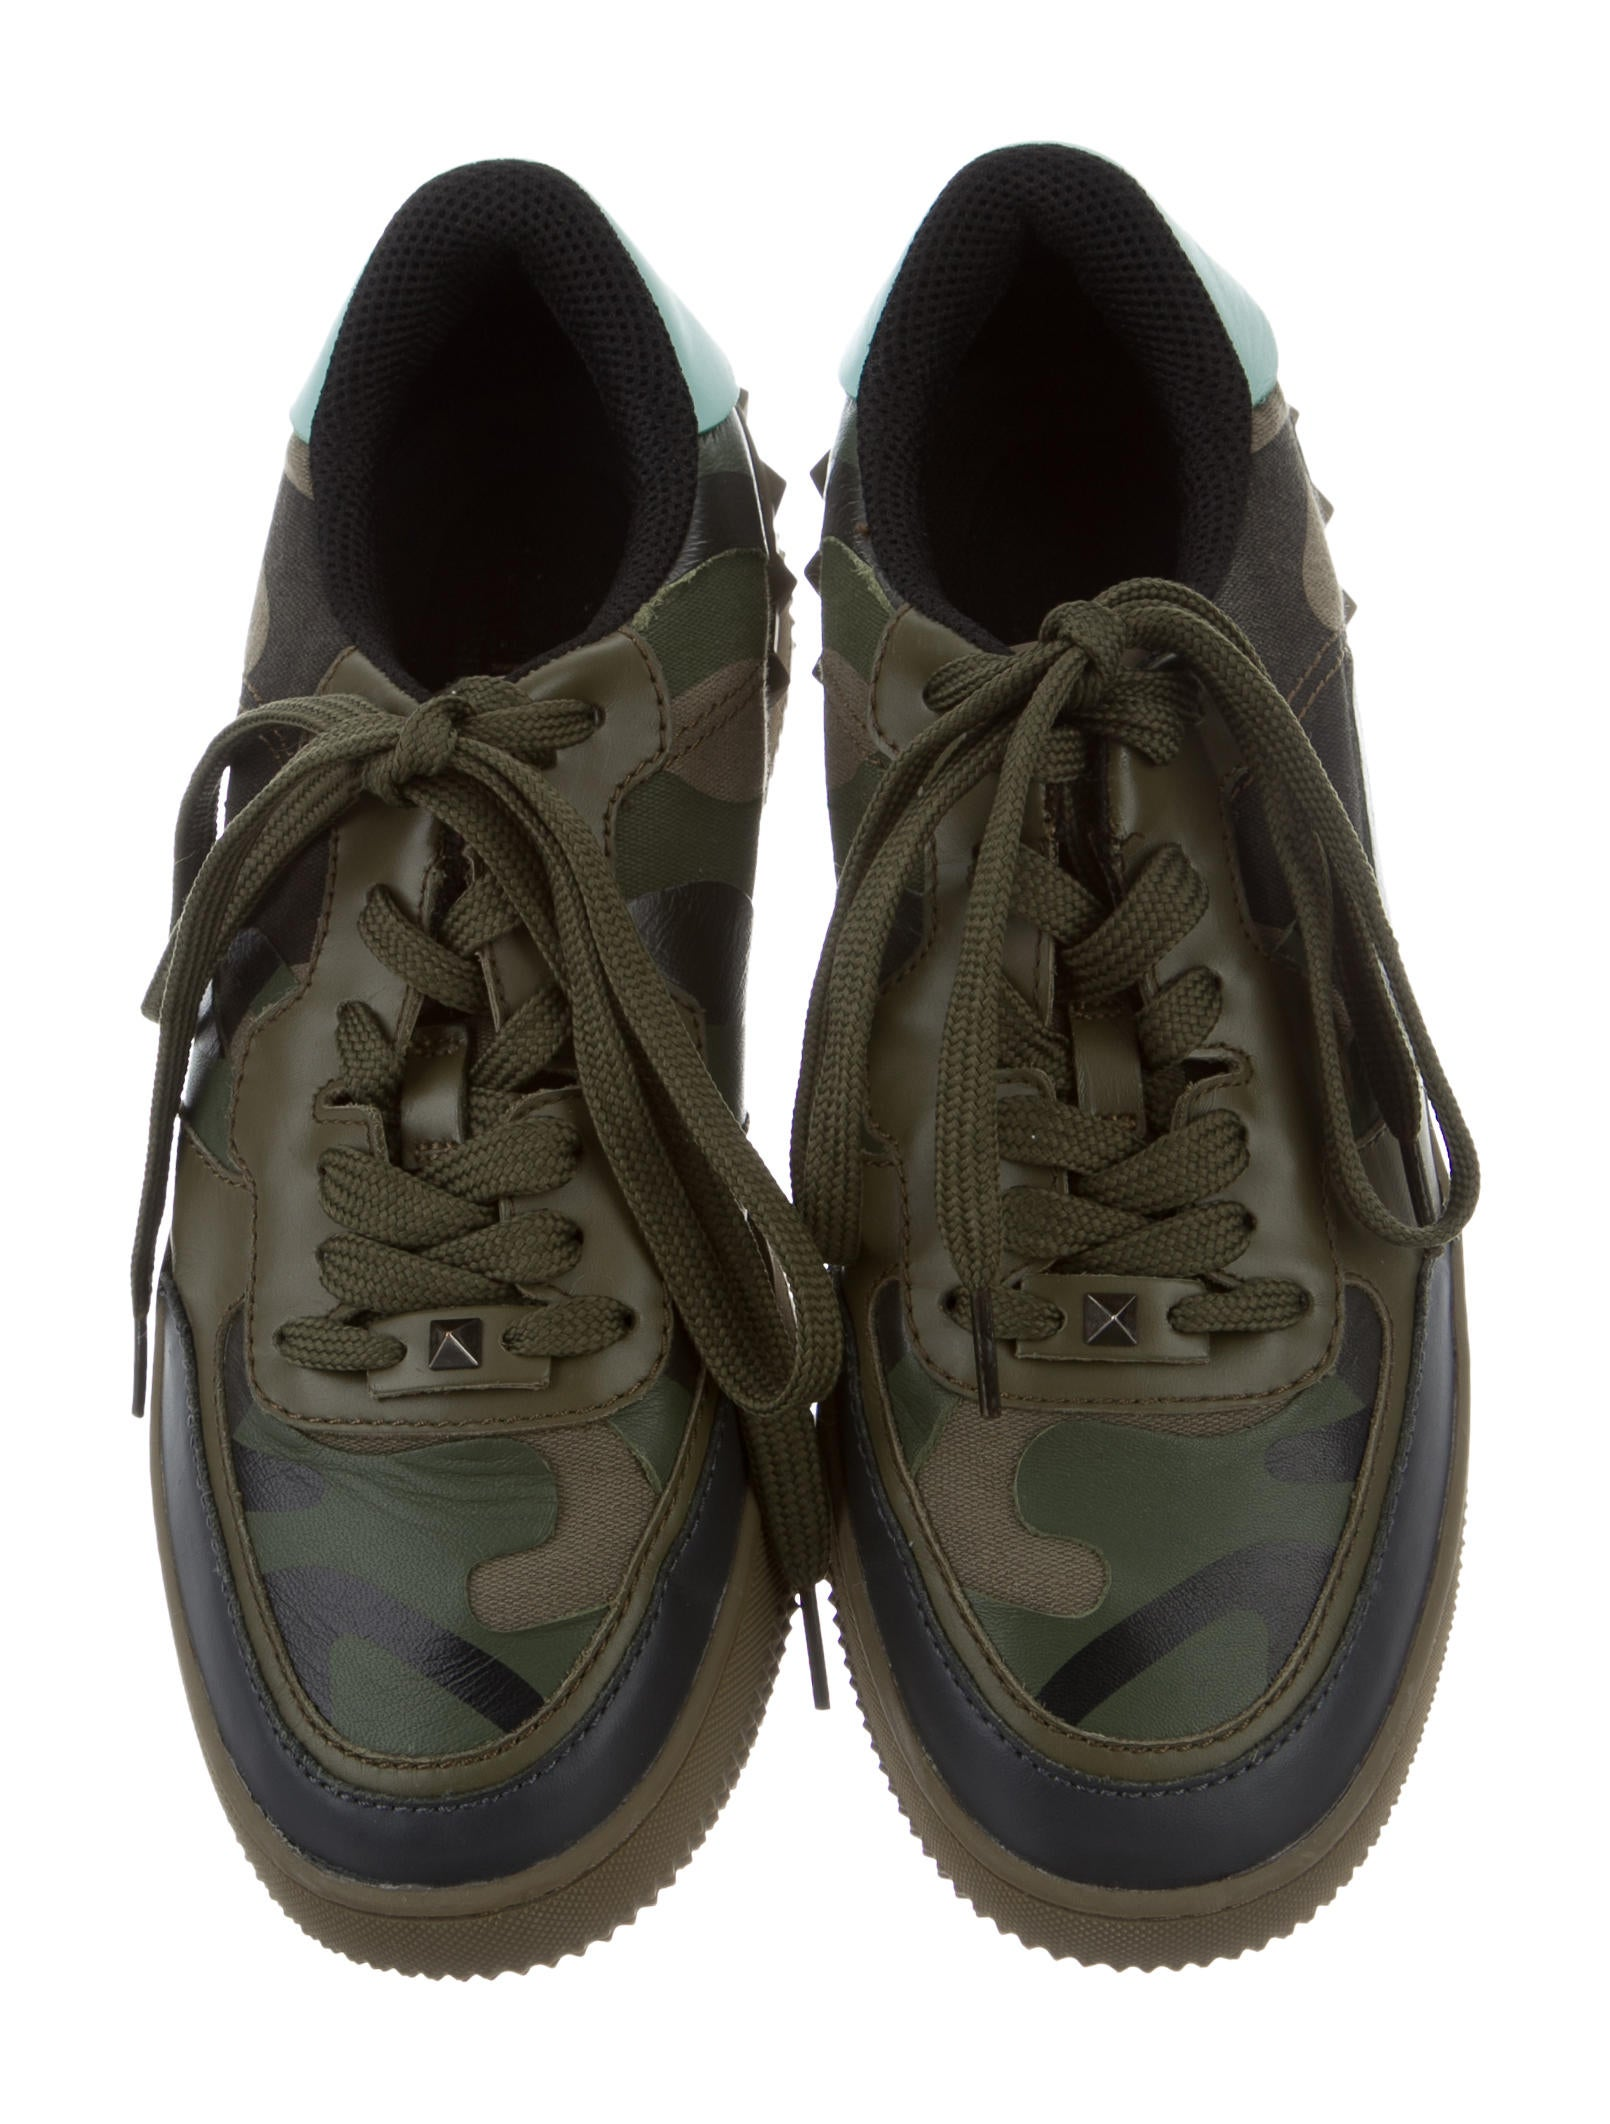 valentino camouflage rockstud sneakers shoes val60457 the realreal. Black Bedroom Furniture Sets. Home Design Ideas